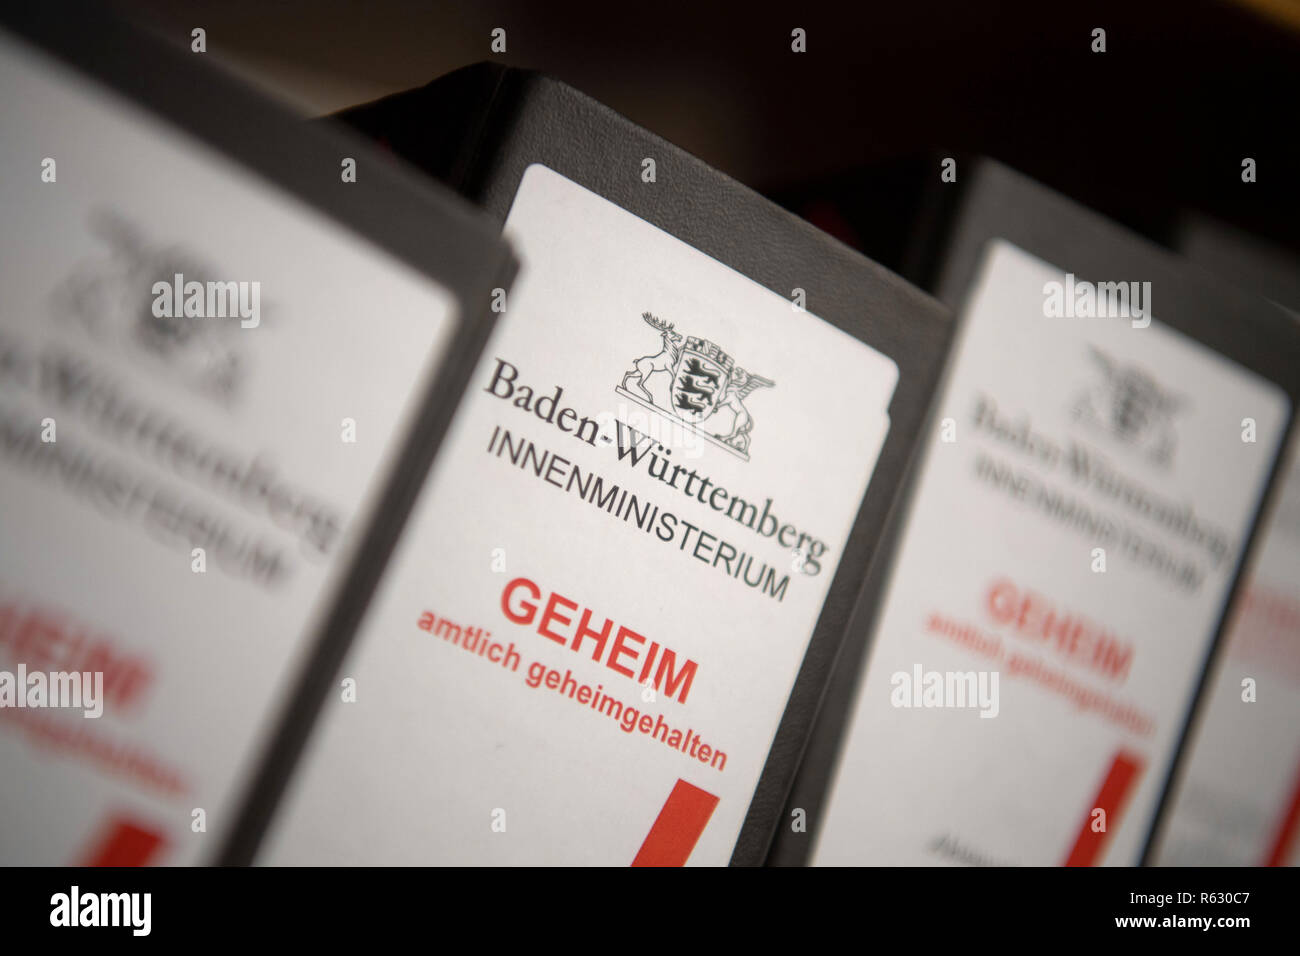 """Stuttgart, Germany. 03rd Dec, 2018. Files marked """"Baden-Württemberg Innenministerium - Geheim - amtlich geheimgehalten"""" (Baden-Württemberg Ministry of the Interior - Secret - Officially Secret) are placed on a shelf during a photo session with files on the Baden-Württemberg NSU Investigation Committee. (to dpa """"NSU committee demands fight against right-wing rock in schools"""" of 03.12.2018) Credit: Marijan Murat/dpa/Alamy Live News Stock Photo"""